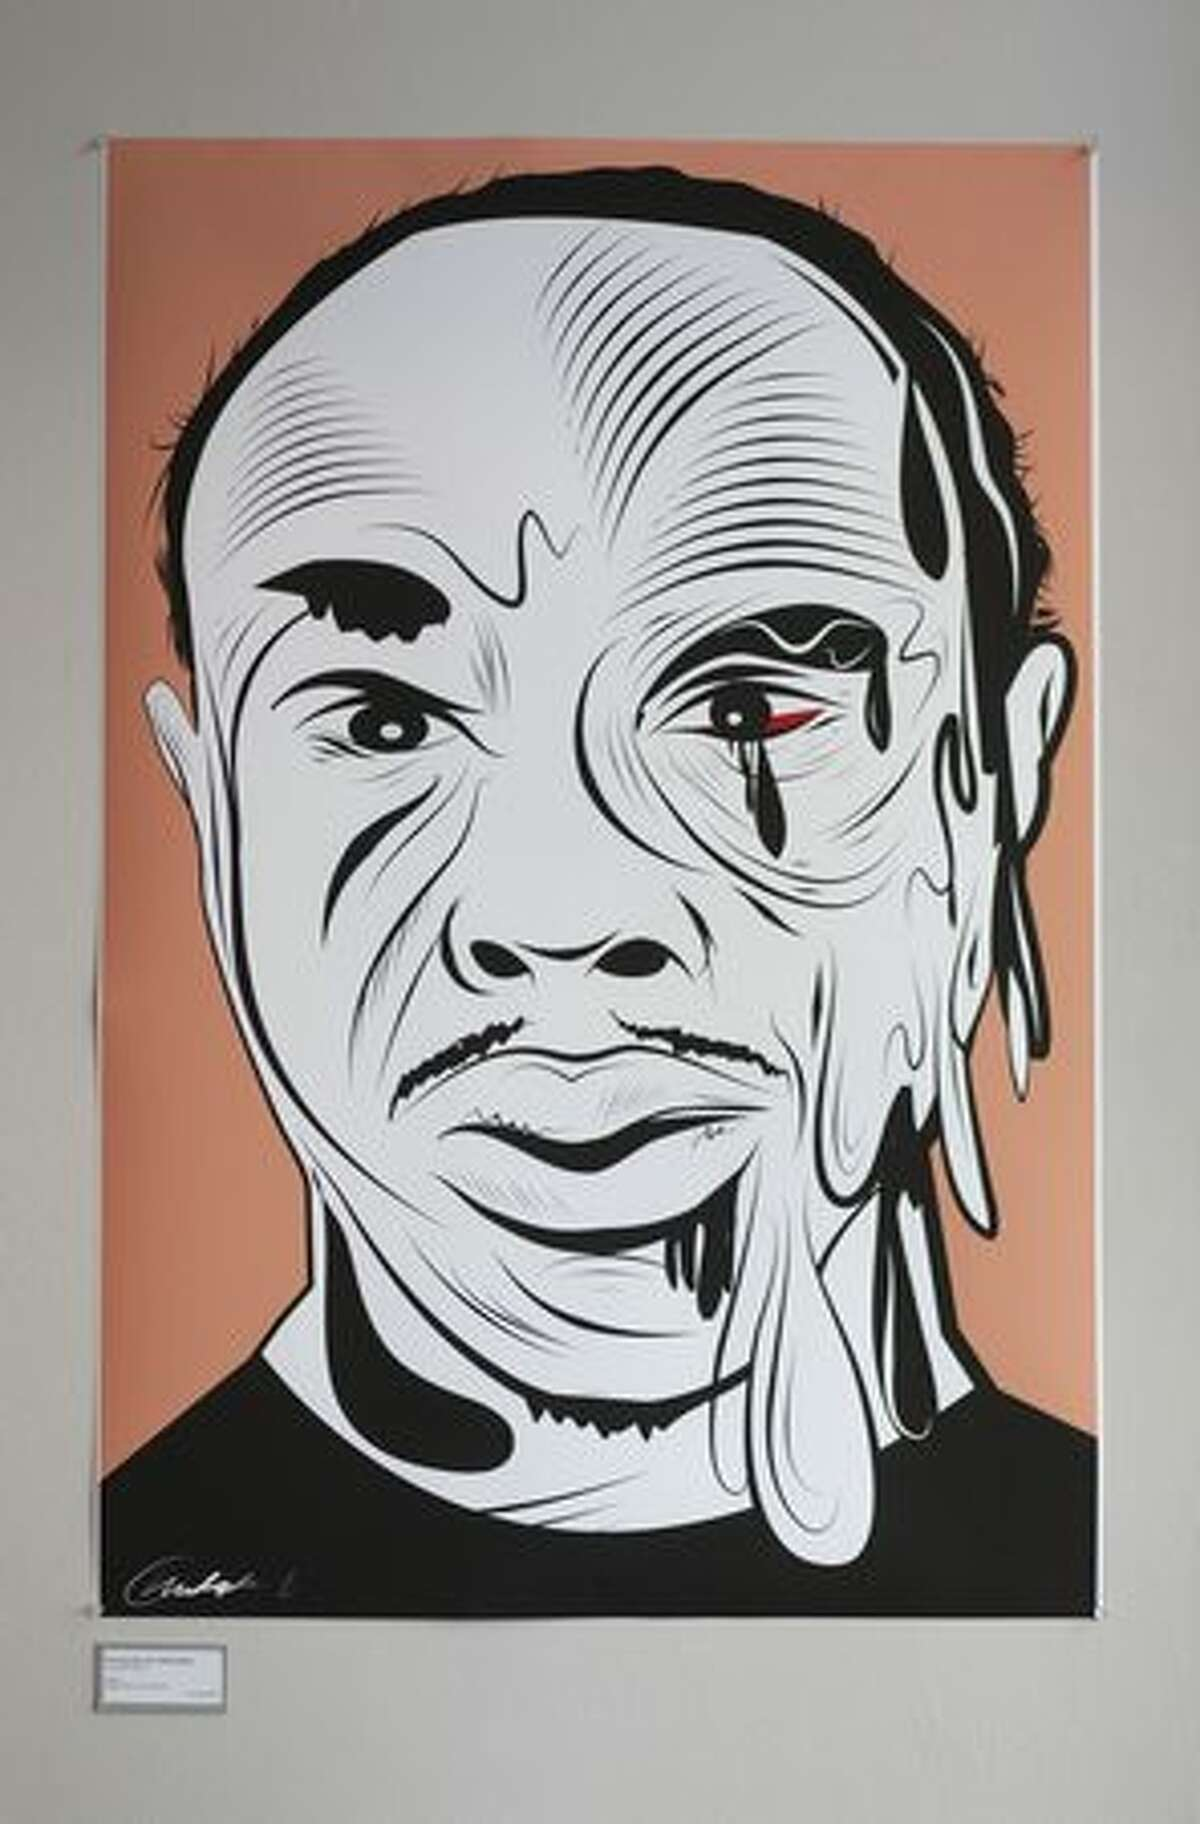 """""""One Eye Can Tell a Whole Story"""" by Christophe Roberts, a digital print, is shown at pun(c)tuation art gallery on East Pike Street in Seattle on Tuesday May 11, 2010. Art at the show deals with the issue of Alley-Barnes and his beating by Seattle Police officers in 2005."""